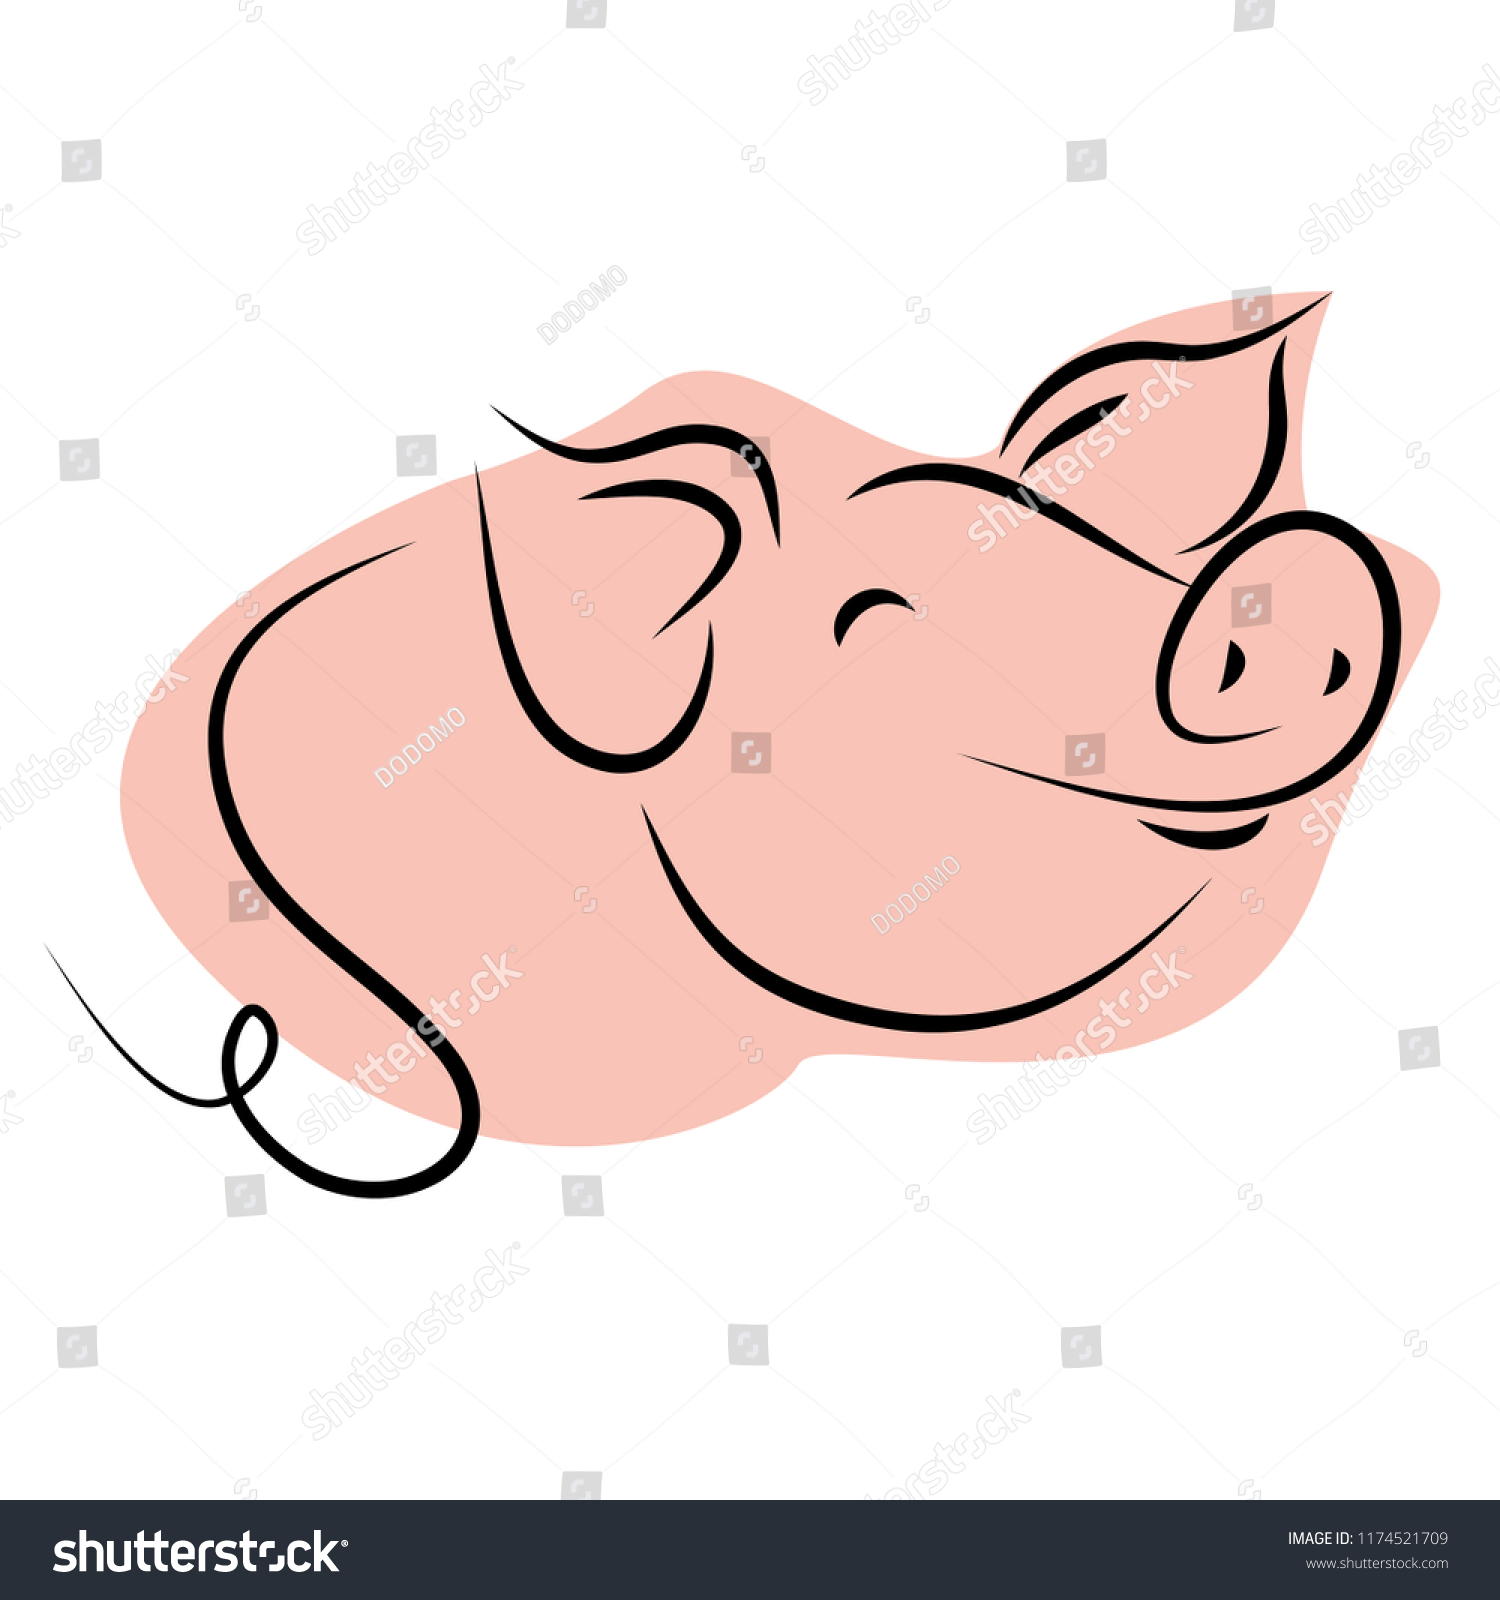 1500x1600 Funny Pig Cute Ice Cream Drawing Piglet Easy Little How To Picture